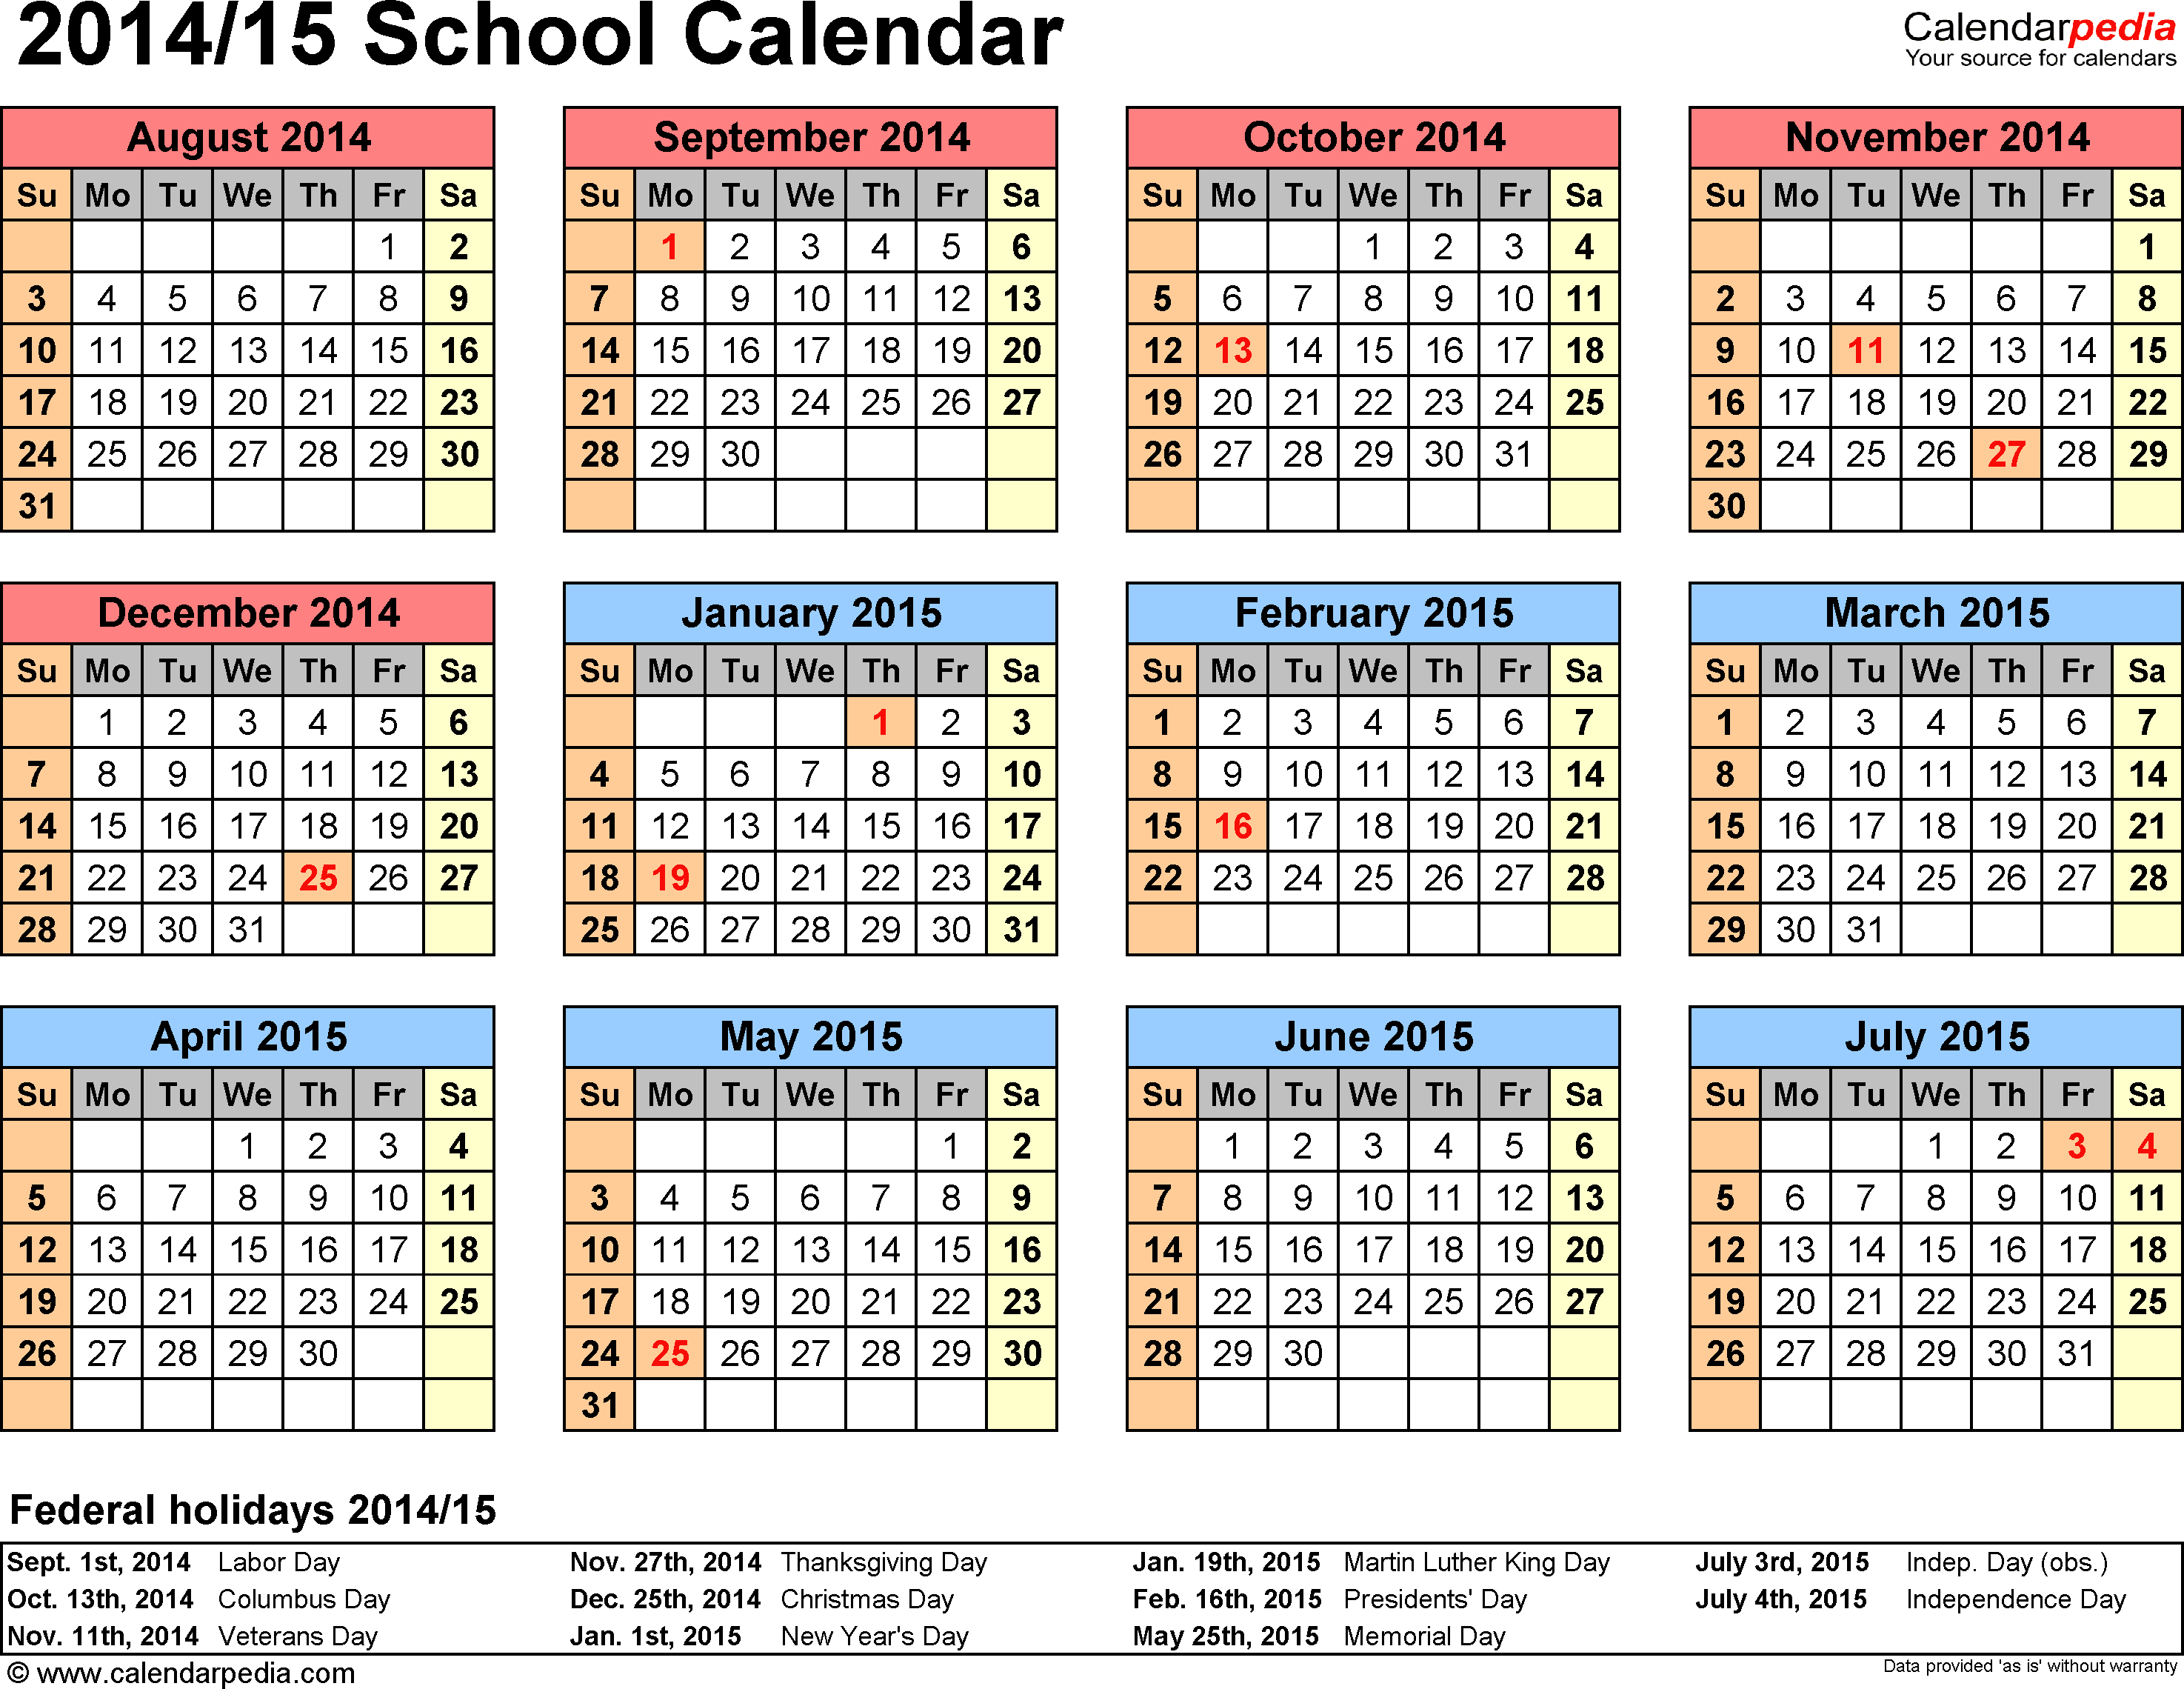 2014 And 2019 School Calendar School calendars 2014/2015 as free printable Word templates